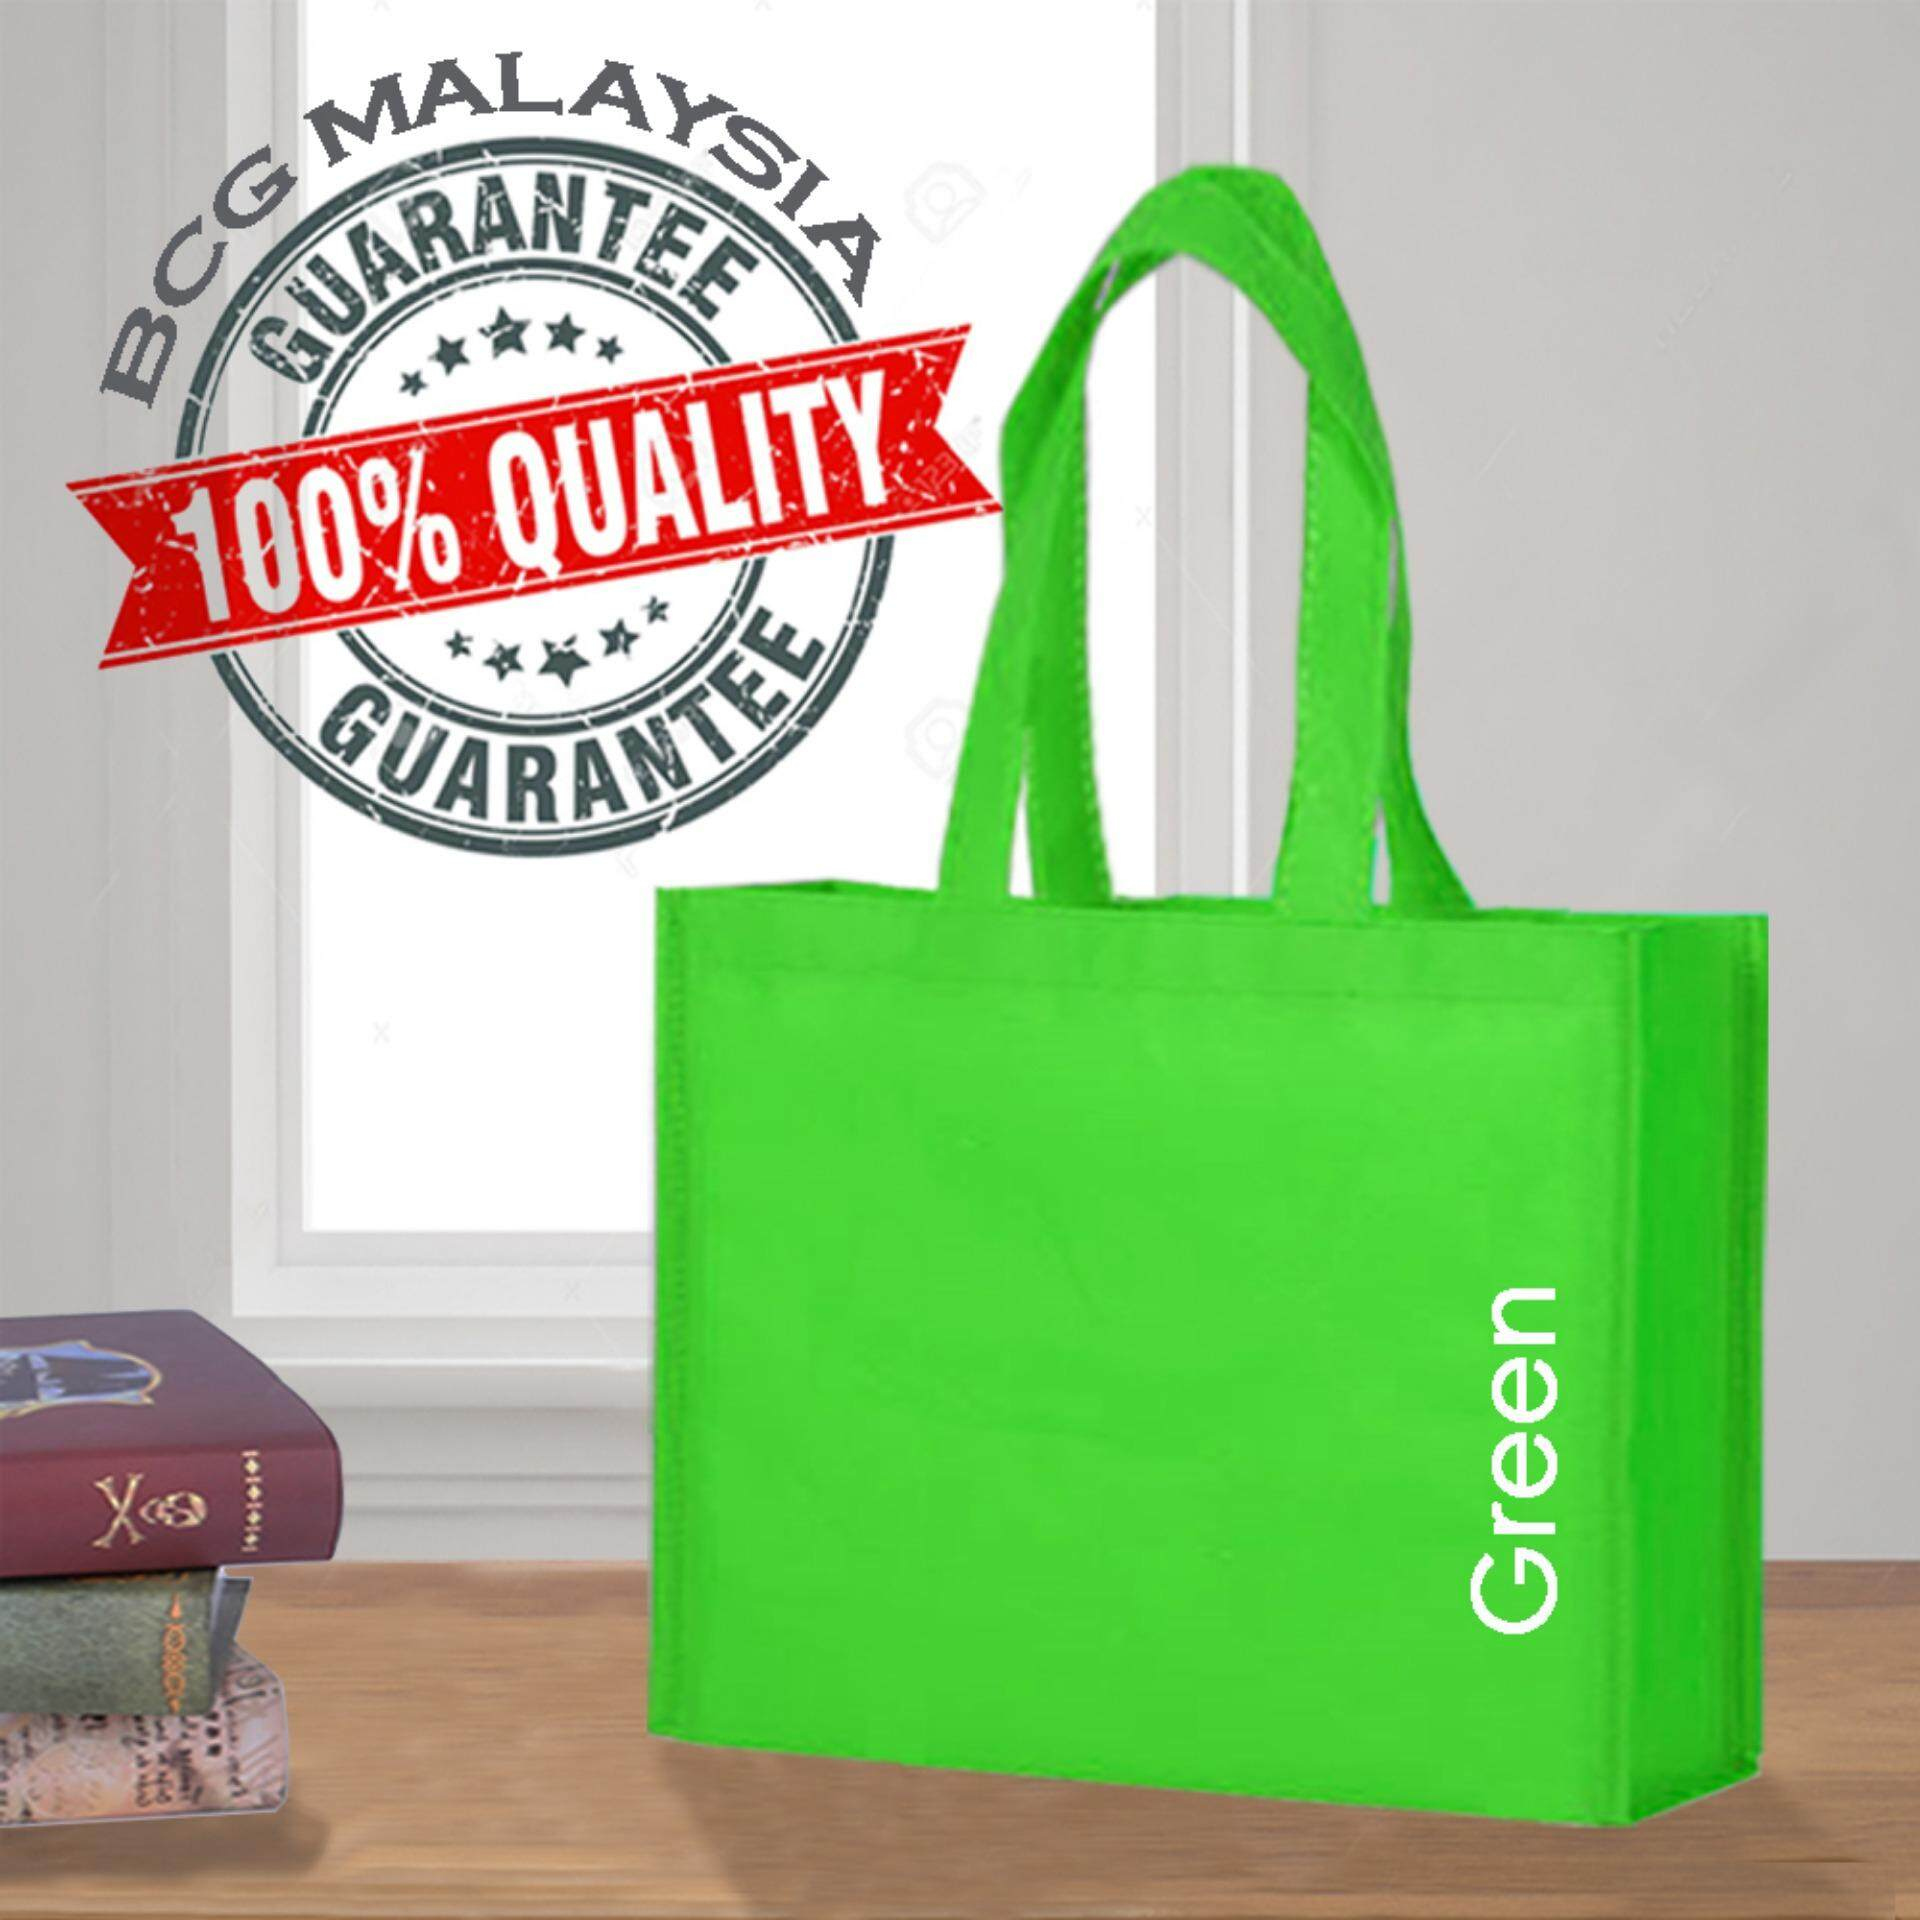 [Ready Stock] BCG Malaysia A3 Green Non Woven Bag Recycle Bag 100% Quality Assured